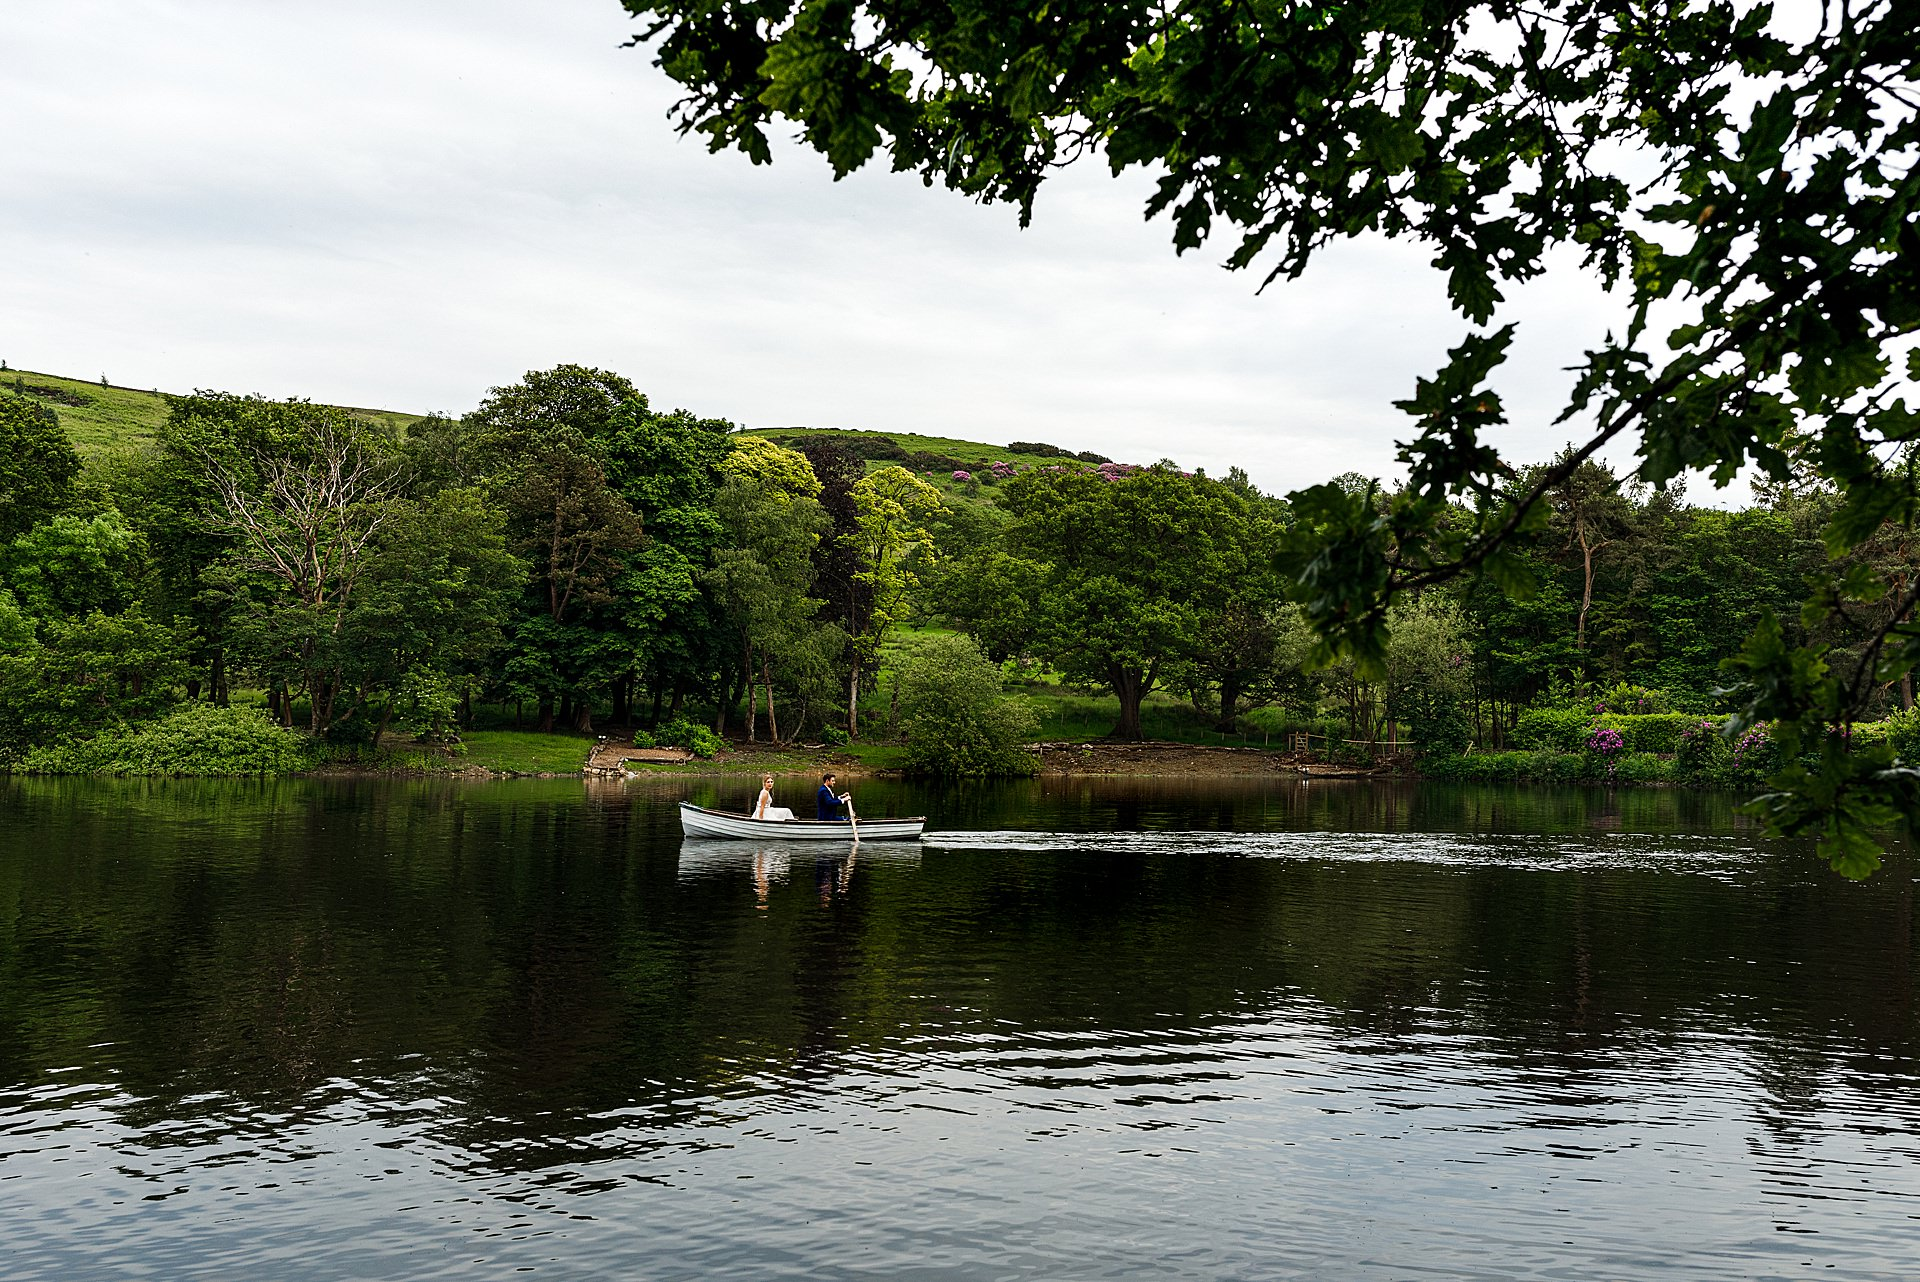 Whyresdale Park lancashire wedding venue bride and groom on the lake photography